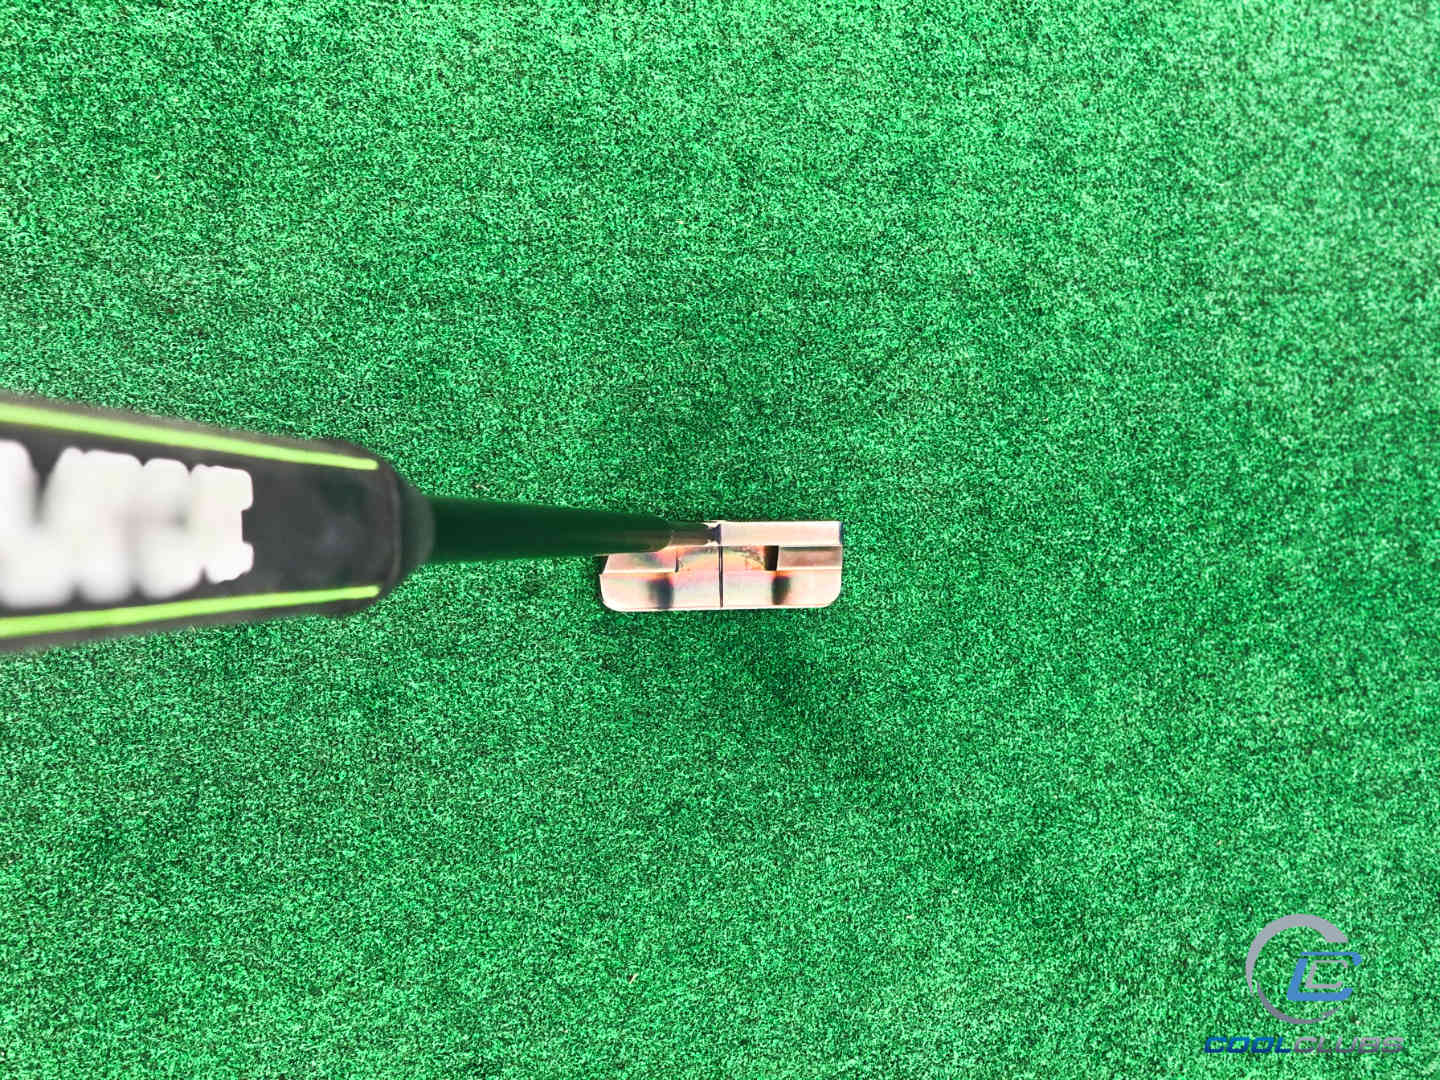 Stability Tour Putter Shaft